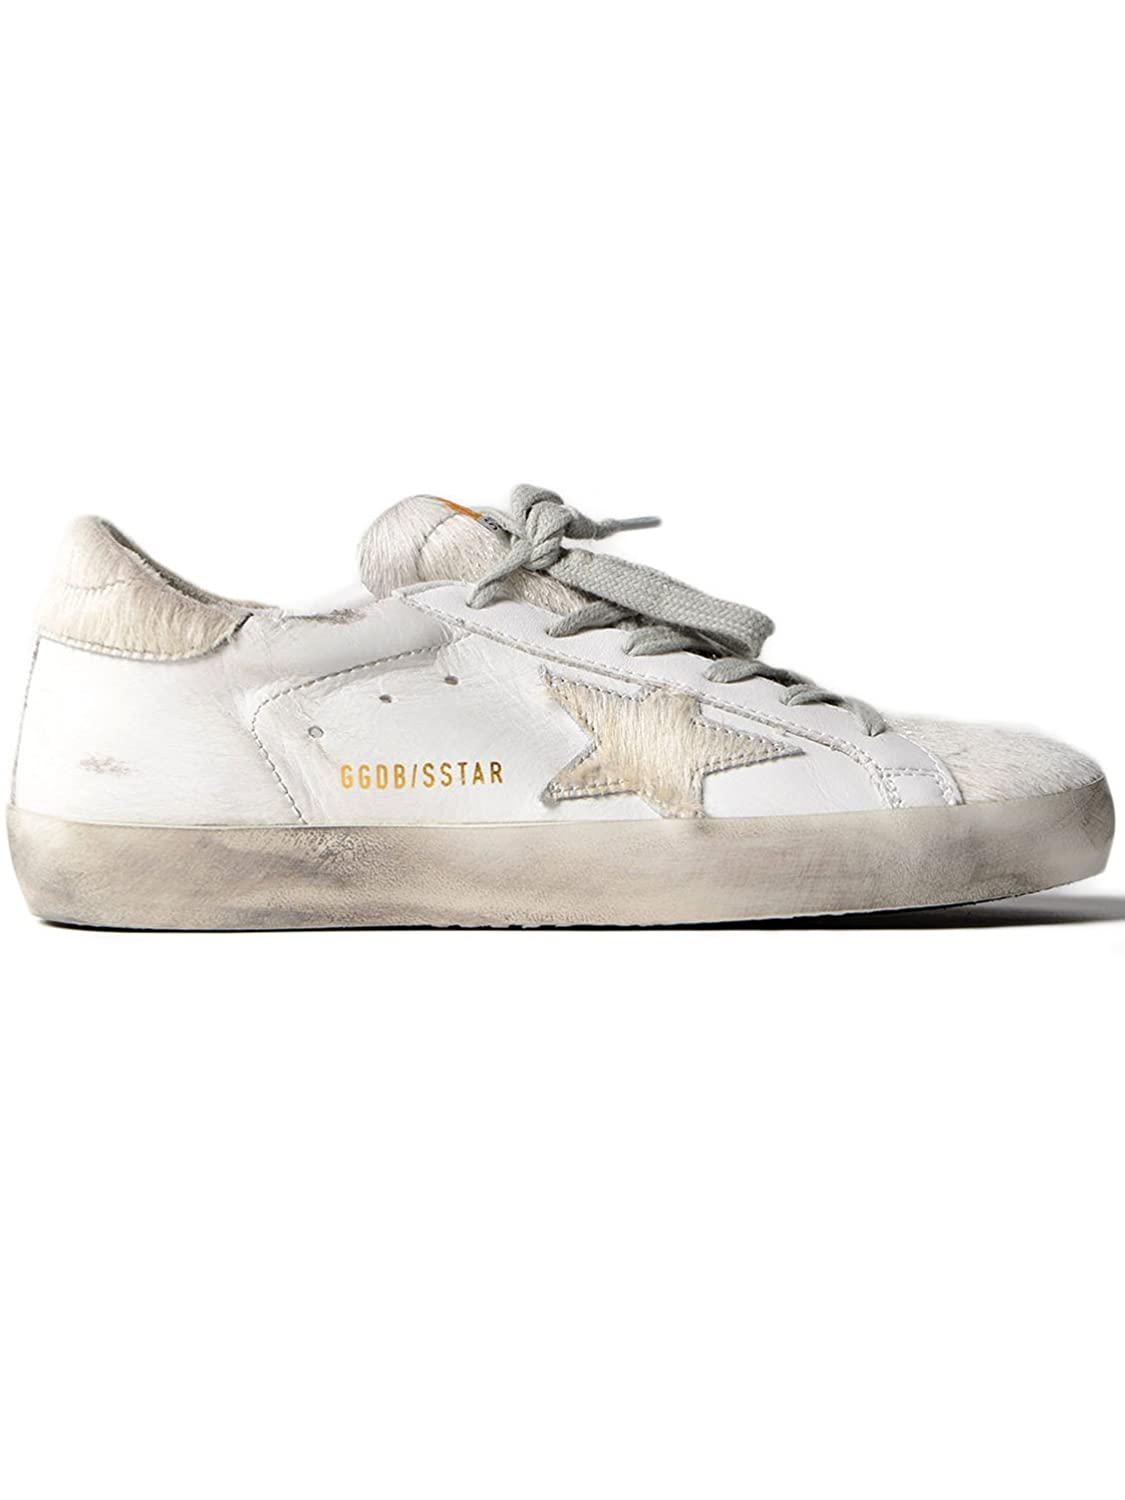 d98f0bd8370 Amazon.com | Golden Goose Deluxe Brand Women's Low Top Fashion Sneakers  Superstar Silver Horsy Star in Leather G32WS590.E67 | Fashion Sneakers